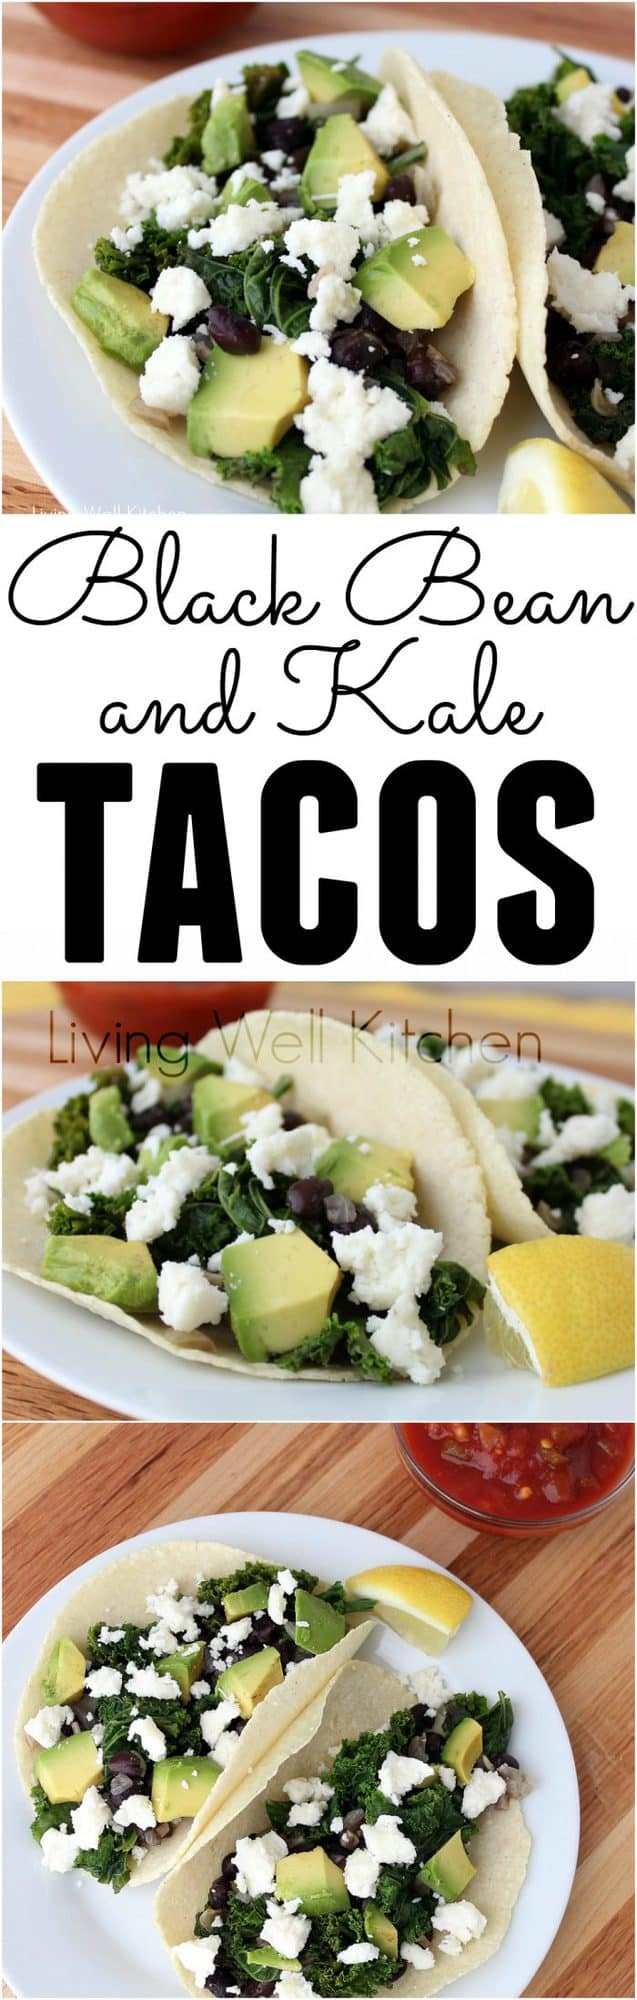 Black Bean and Kale Tacos from @memeinge are vegetarian {or vegan} & gluten-free tacos that are easy, healthy, and packed with veggies